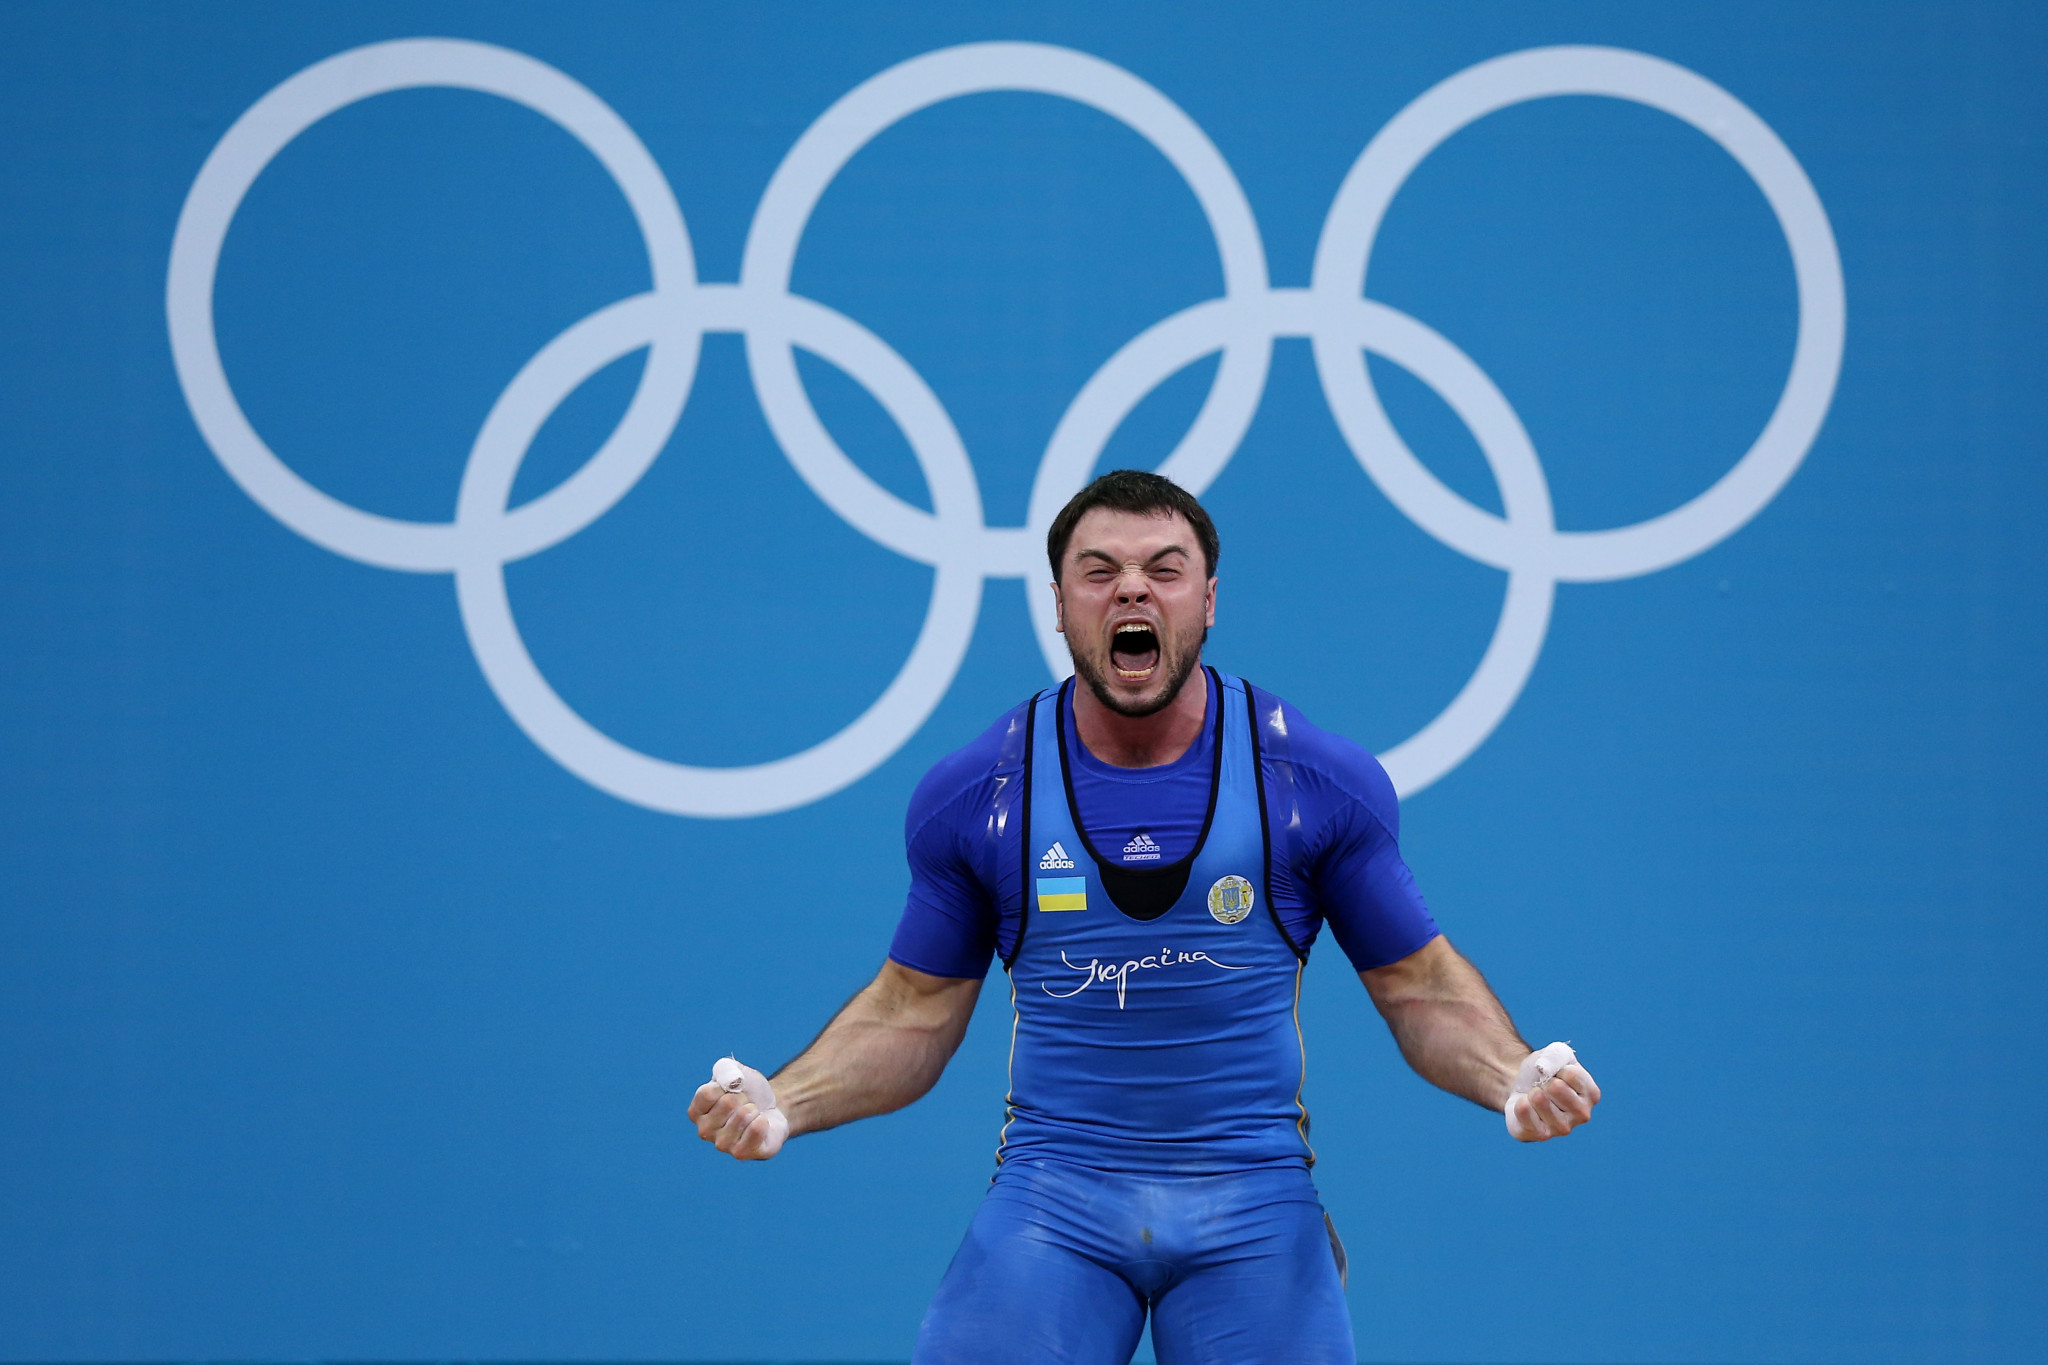 IOC confirm Torokhtiy stripped over London 2012 gold over doping offence